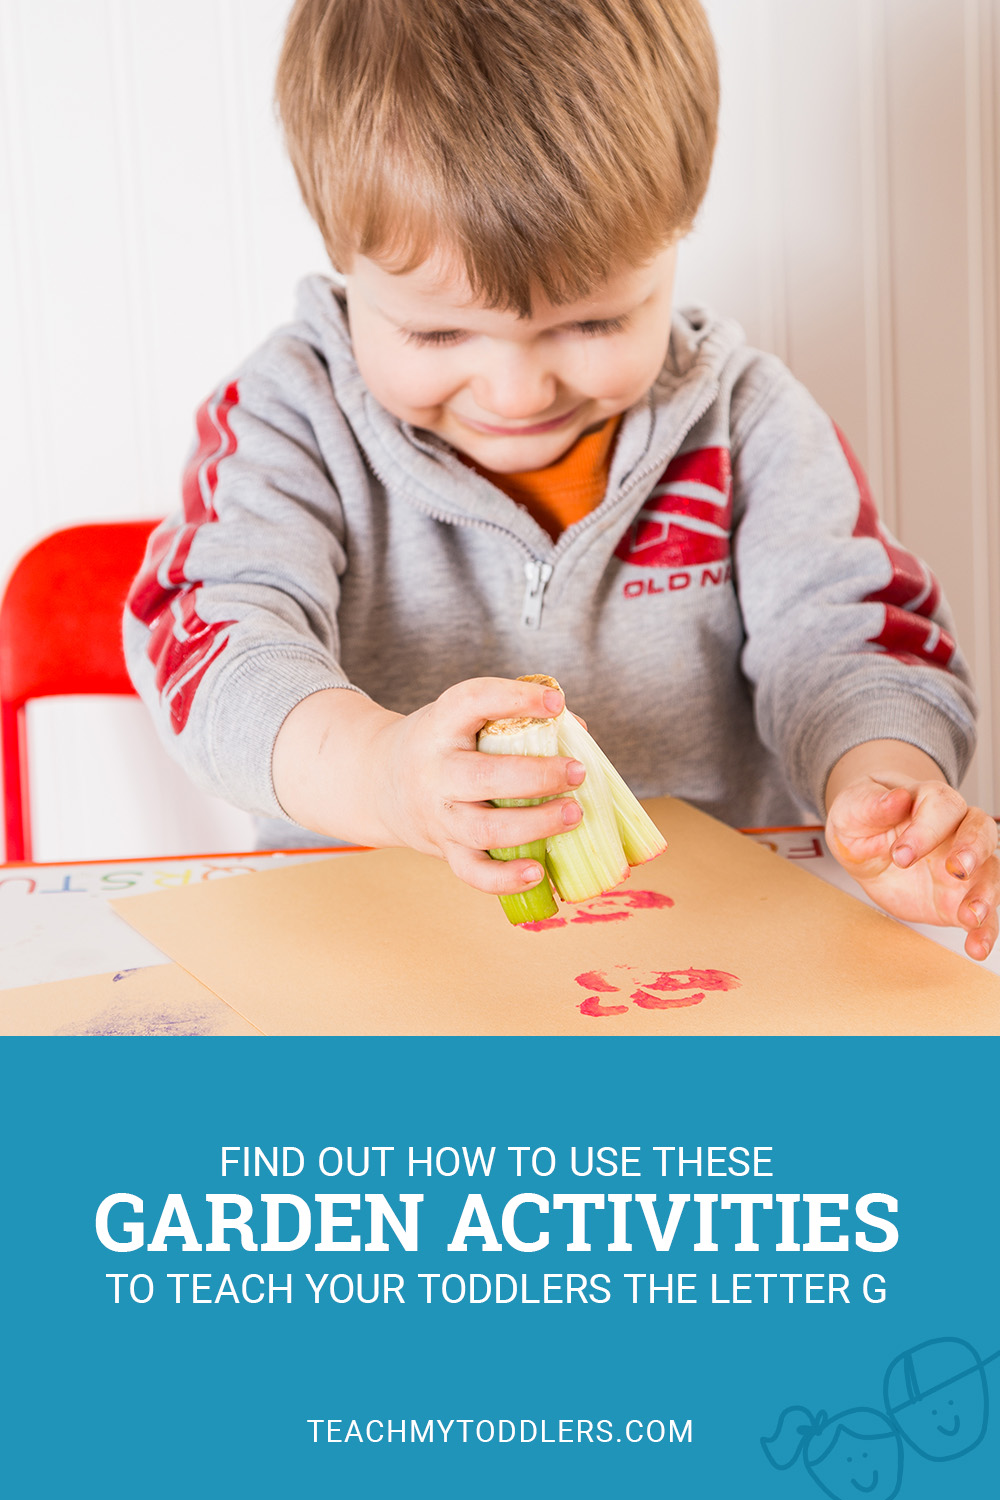 Find out how to use these g is for garden activities to teach your toddlers the letter g